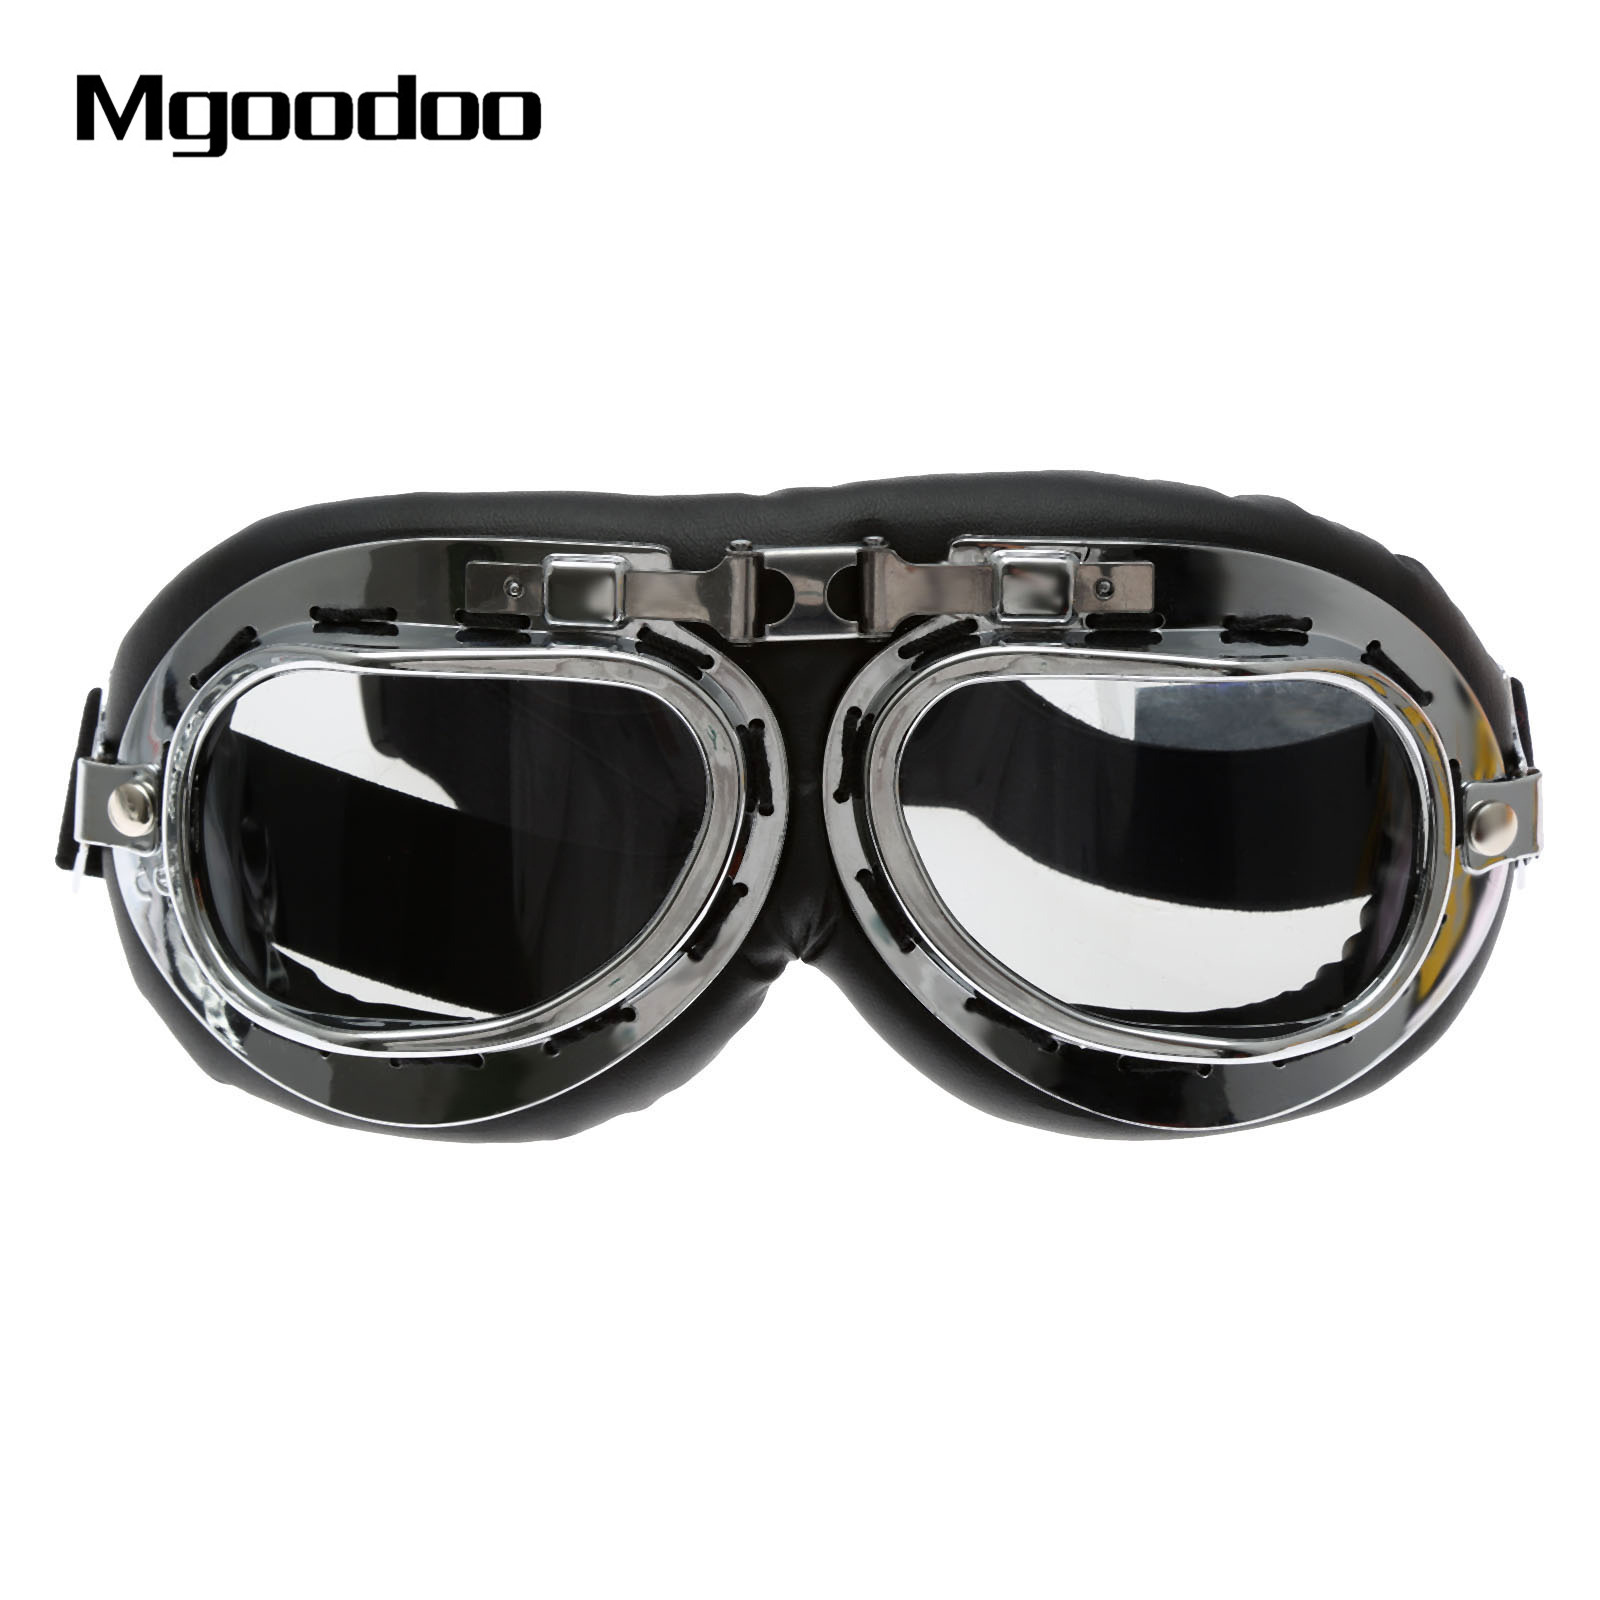 1x Silver Vintage Motocross Goggles Anti-UV Scooter Motorcycle Glasses ATV Skiing Cycling Off-Road Eyewear Sunglasses Brown Lens